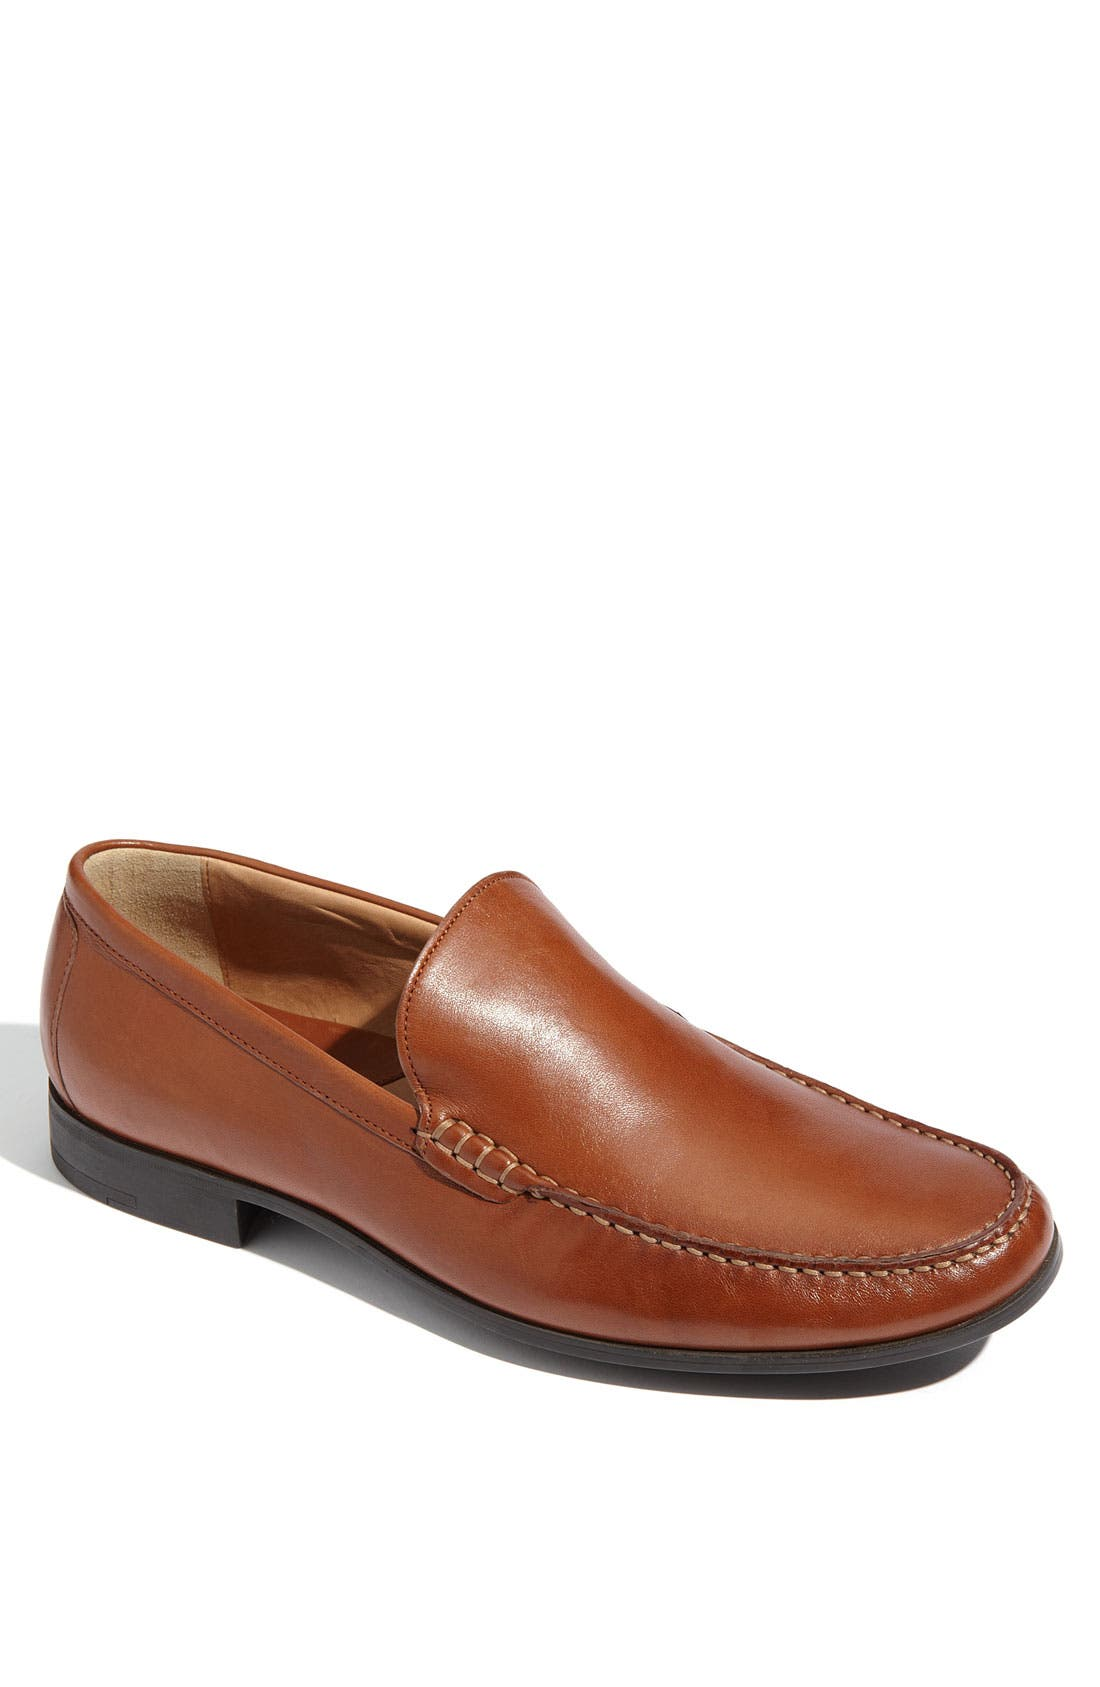 Johnston & Murphy 'Creswell' Venetian Slip-On (Men)